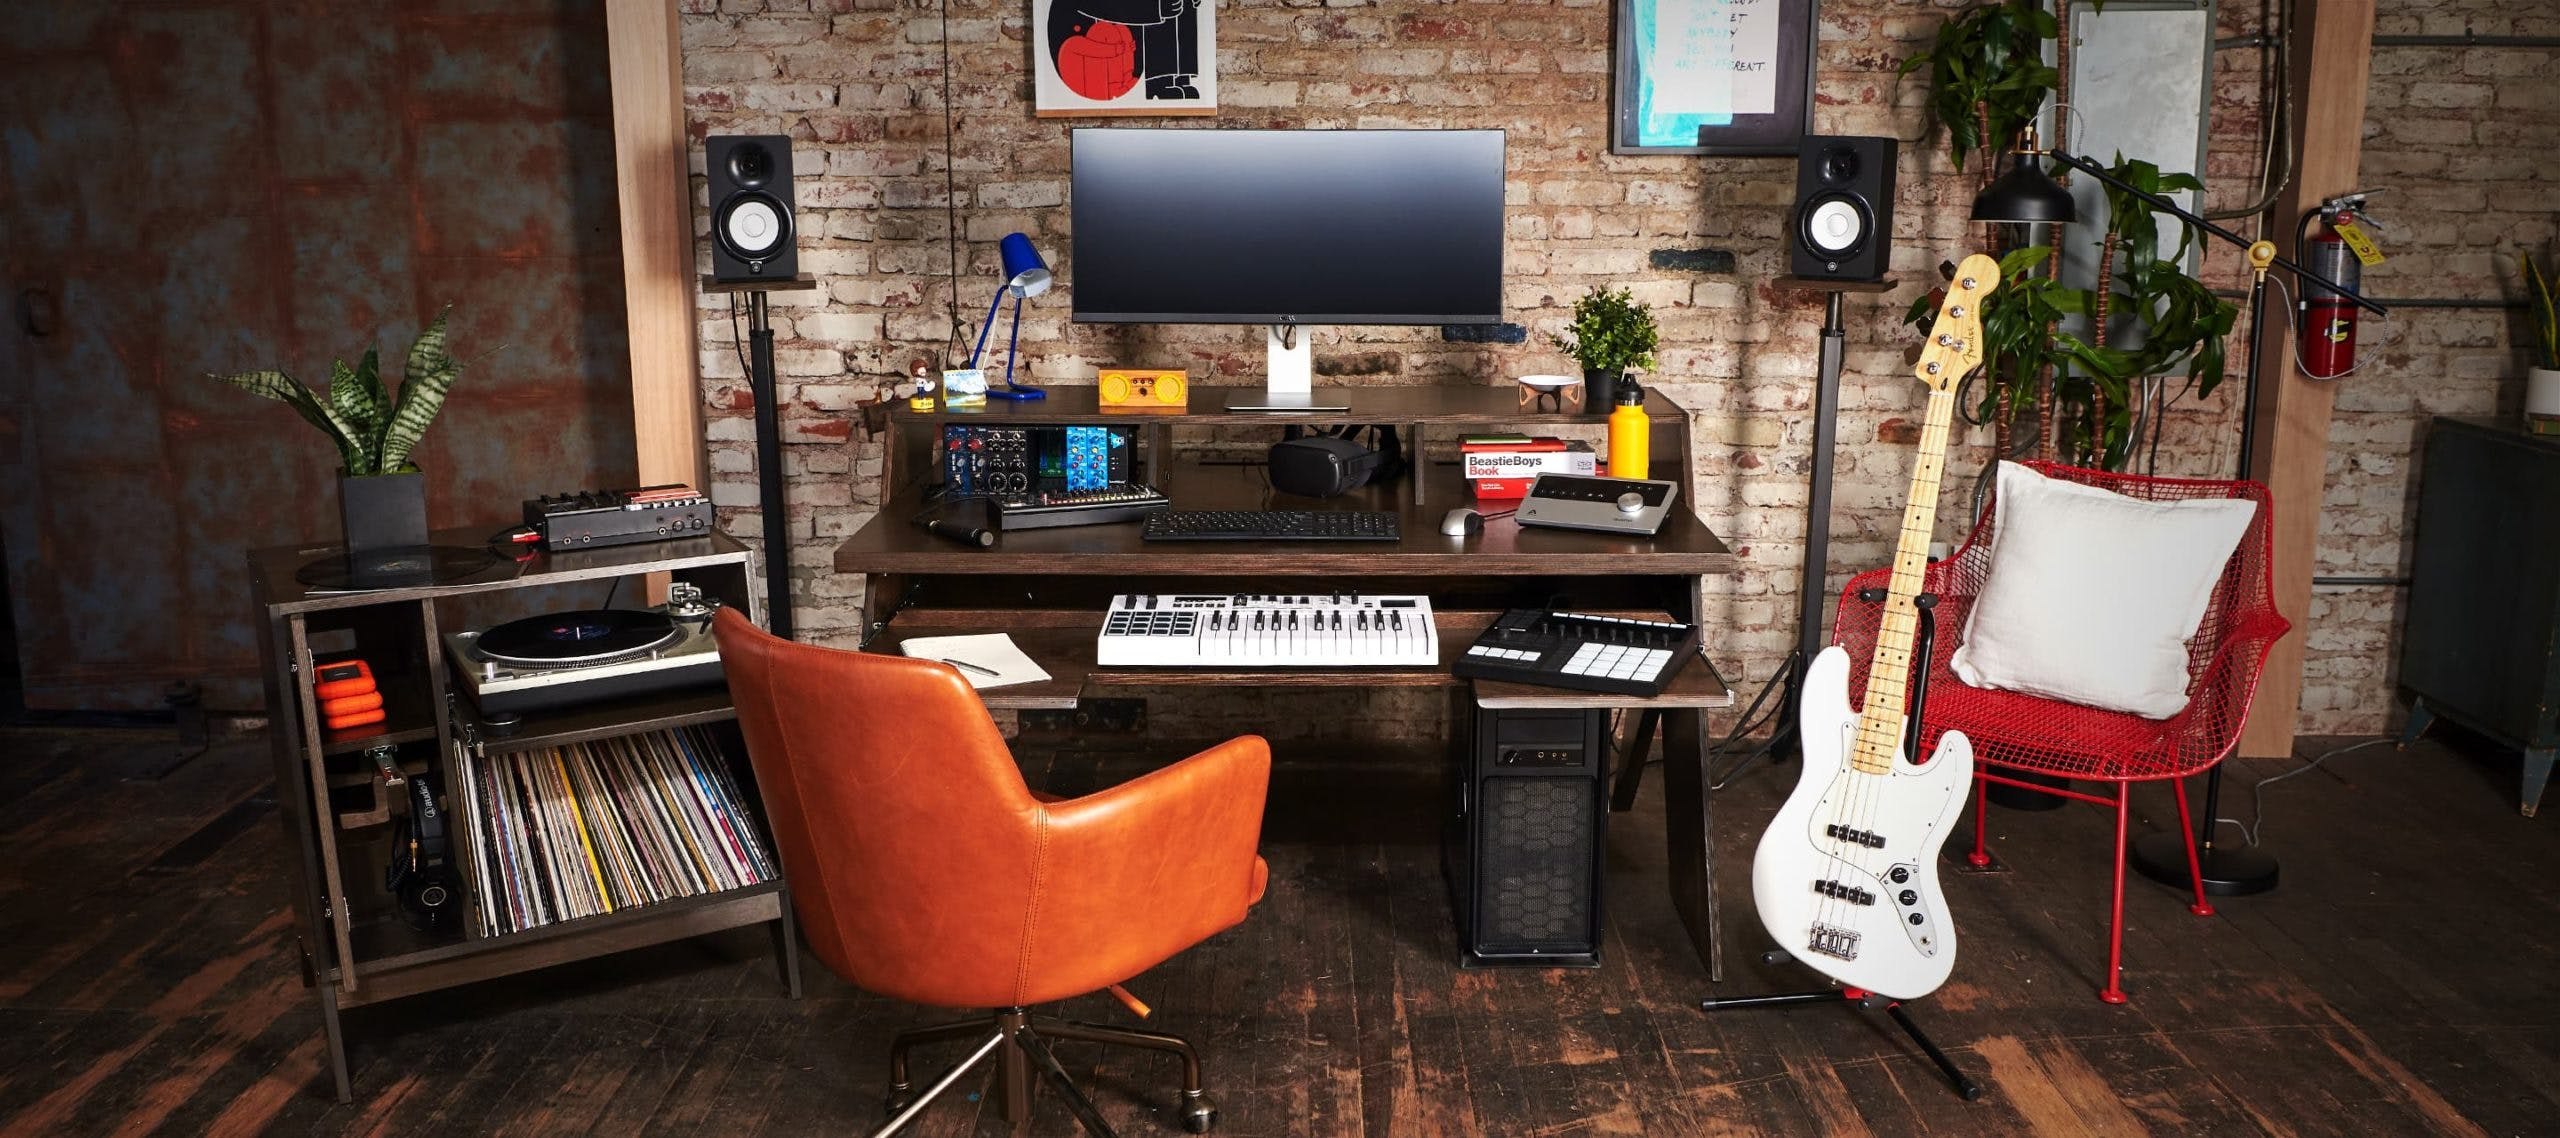 Studio setup in room with brown Output Platform desk, brown Output sidecar accessory, white Fender guitar, studio monitors, and colorful home accessories.